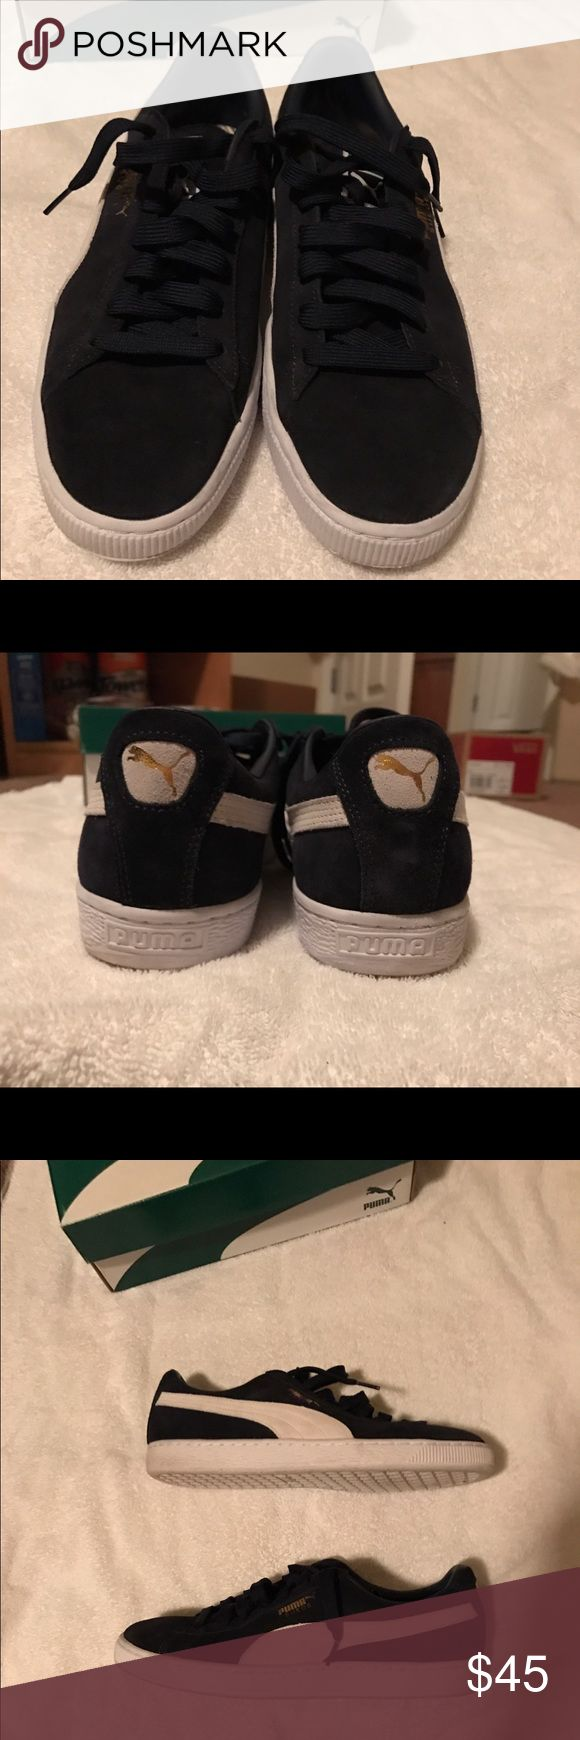 Men's PUMA Suede Classic US SZ 11.5 Peacoat/White. Original box. Worn lightly for about a month: 9/10. US 11.5. UK 10.5. Puma Shoes Sneakers